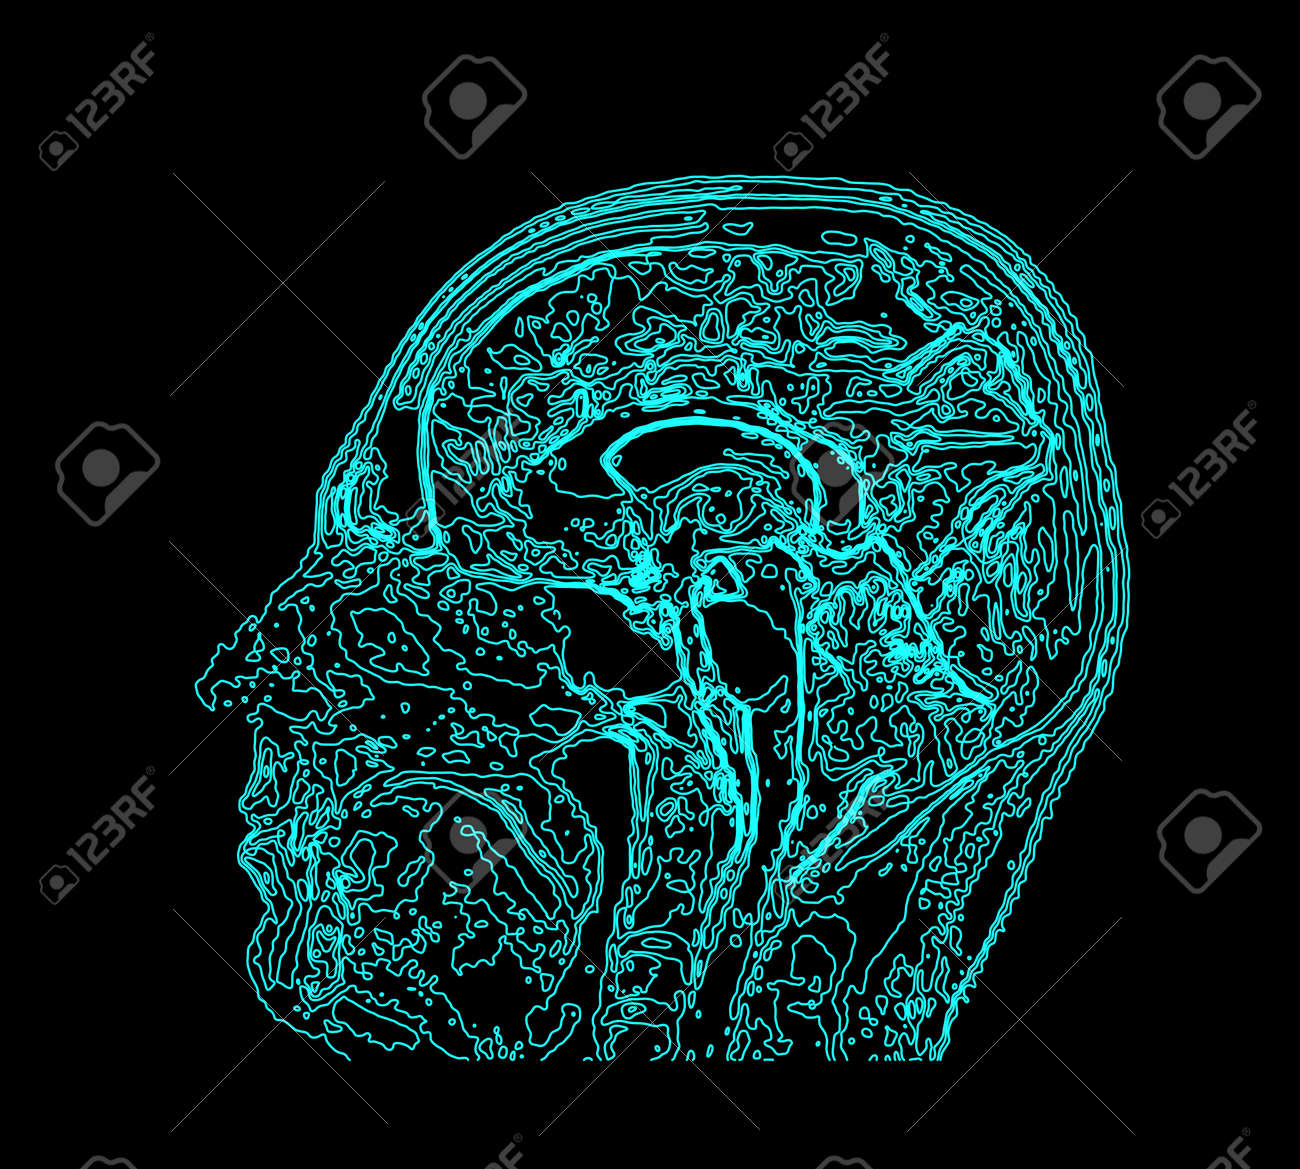 Topographic Map Mri Of The Human Brain Royalty Free Cliparts